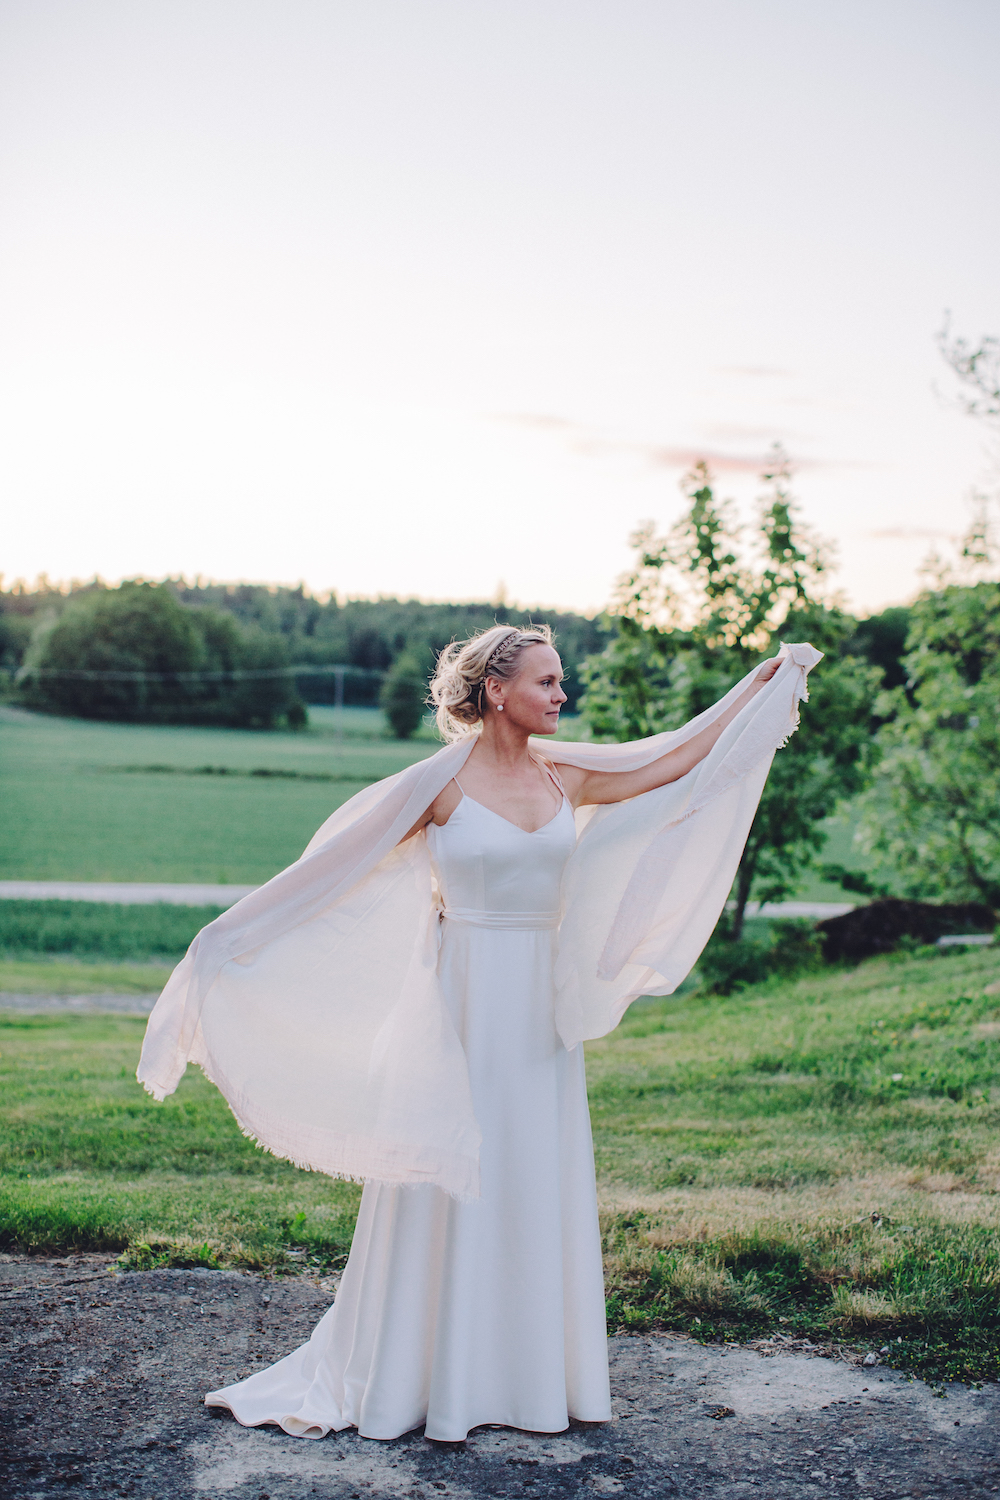 Karin wears a wedding dress by Halfpenny London